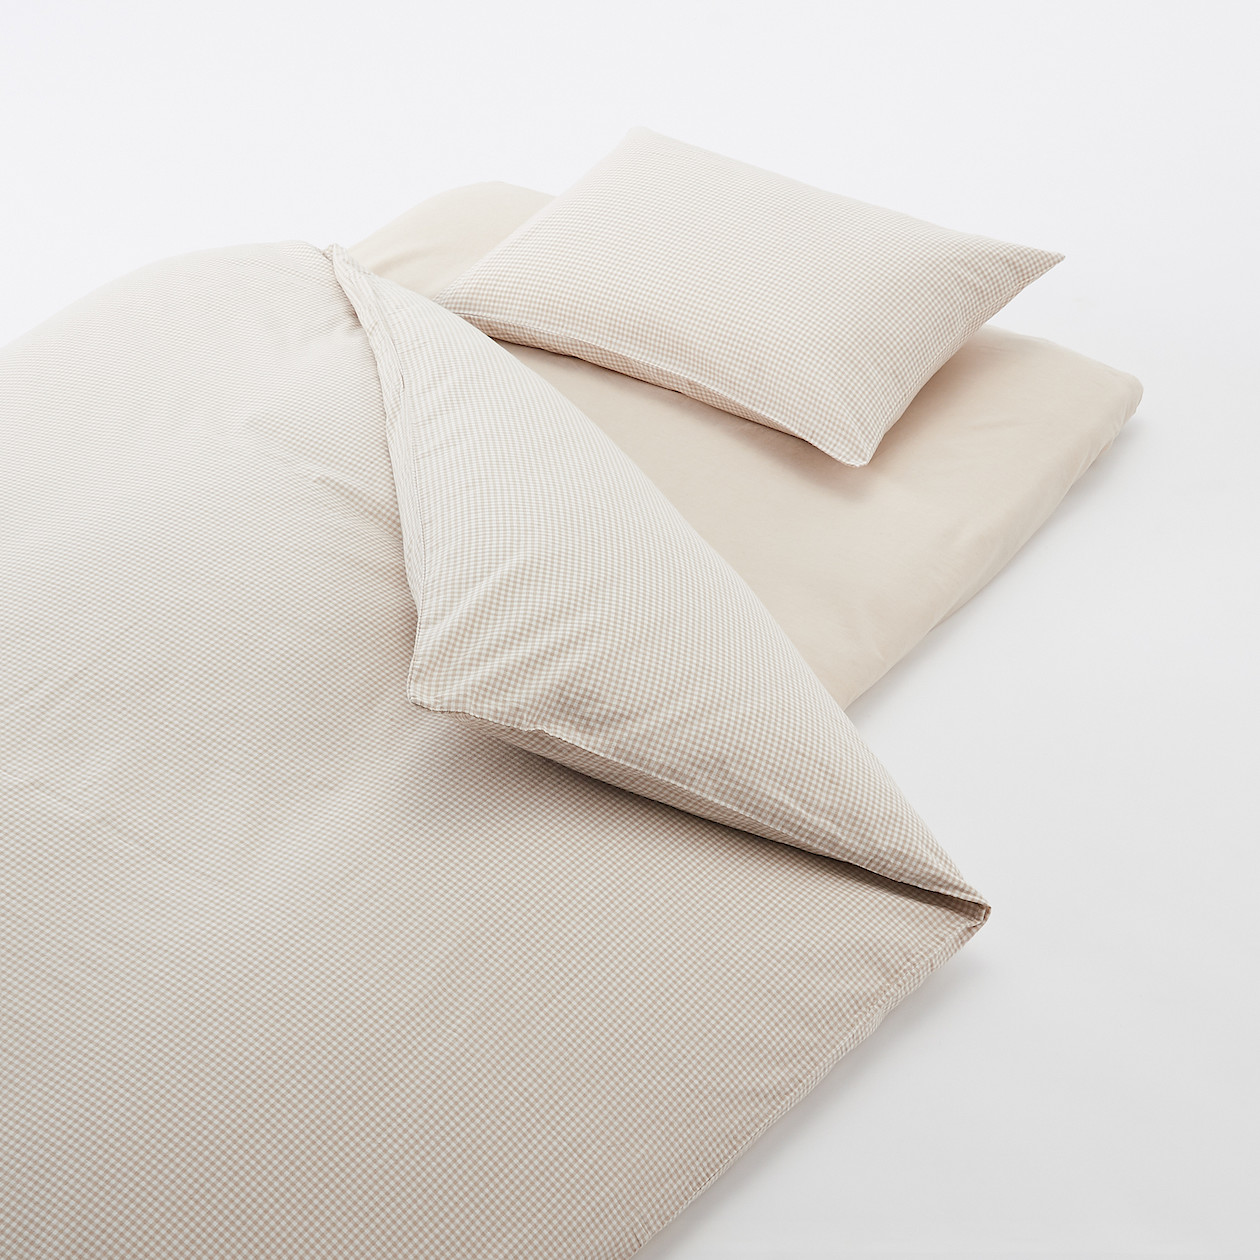 Washed Cotton Cover Set For Futon S